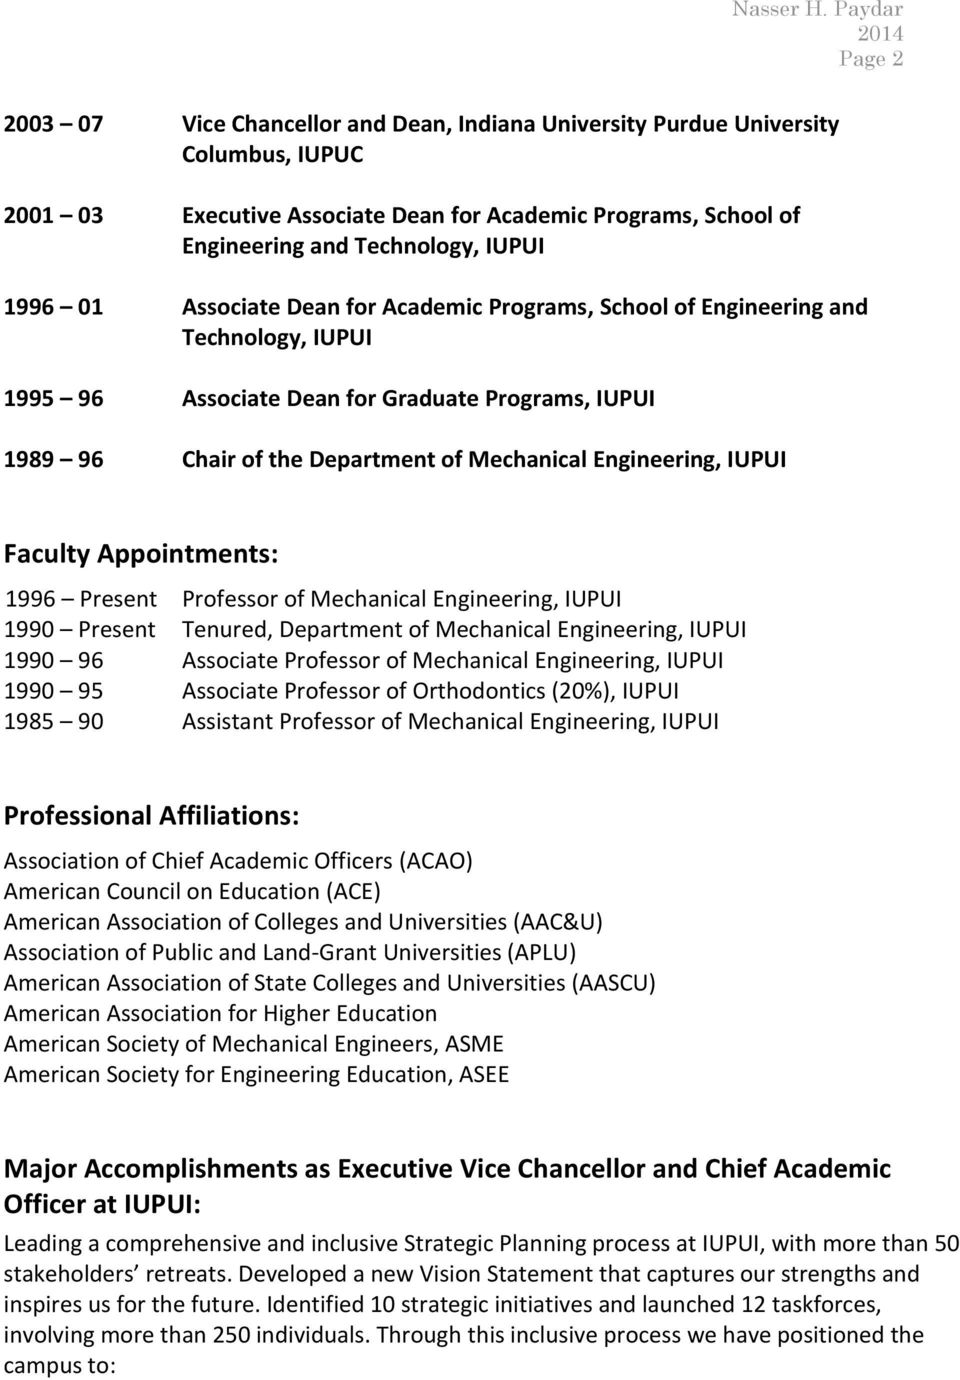 IUPUI Faculty Appointments: 1996 Present Professor of Mechanical Engineering, IUPUI 1990 Present Tenured, Department of Mechanical Engineering, IUPUI 1990 96 Associate Professor of Mechanical